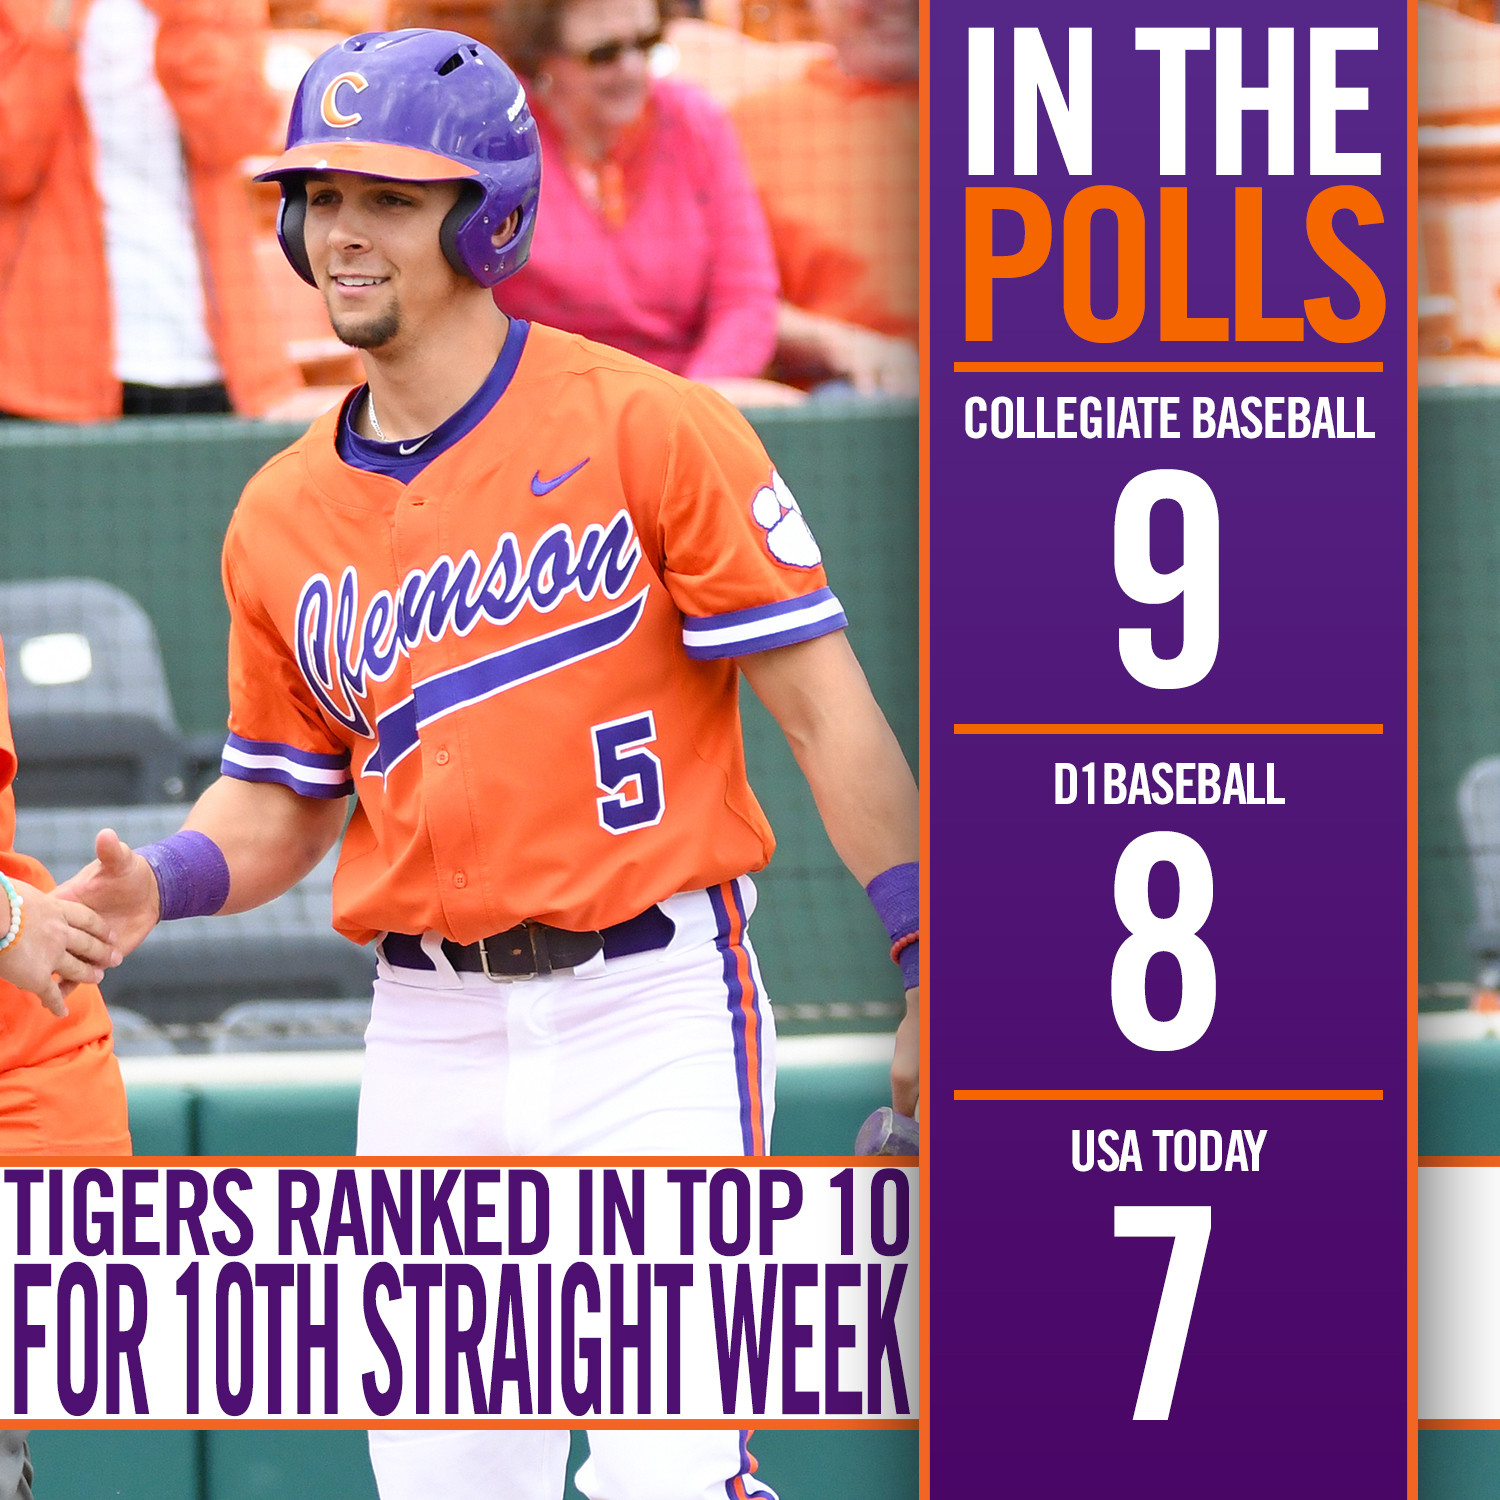 Tigers Ranked in Top 10